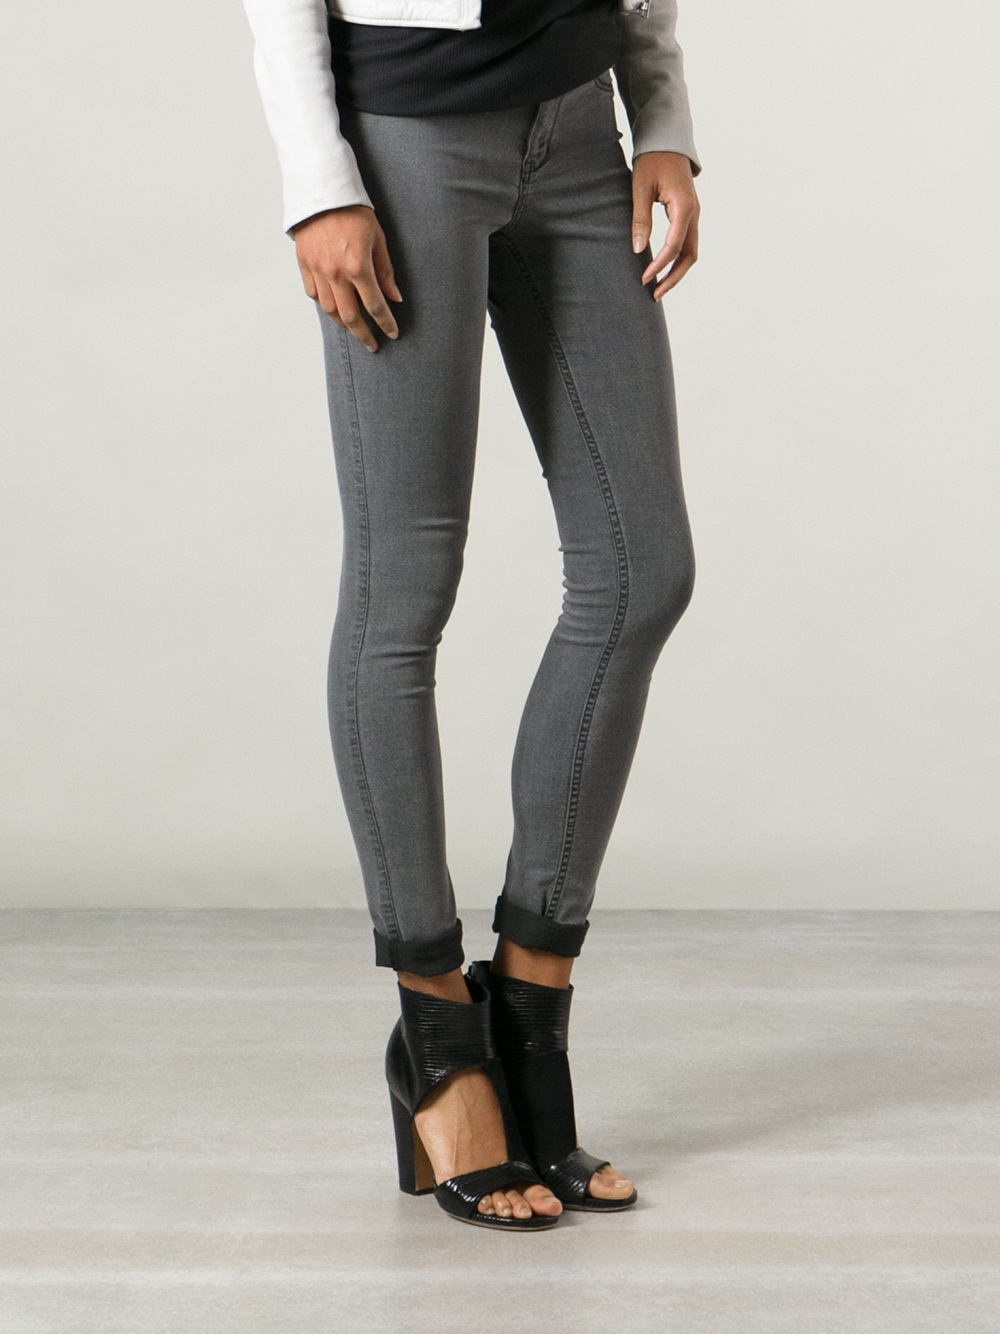 Jeggings 2nd day